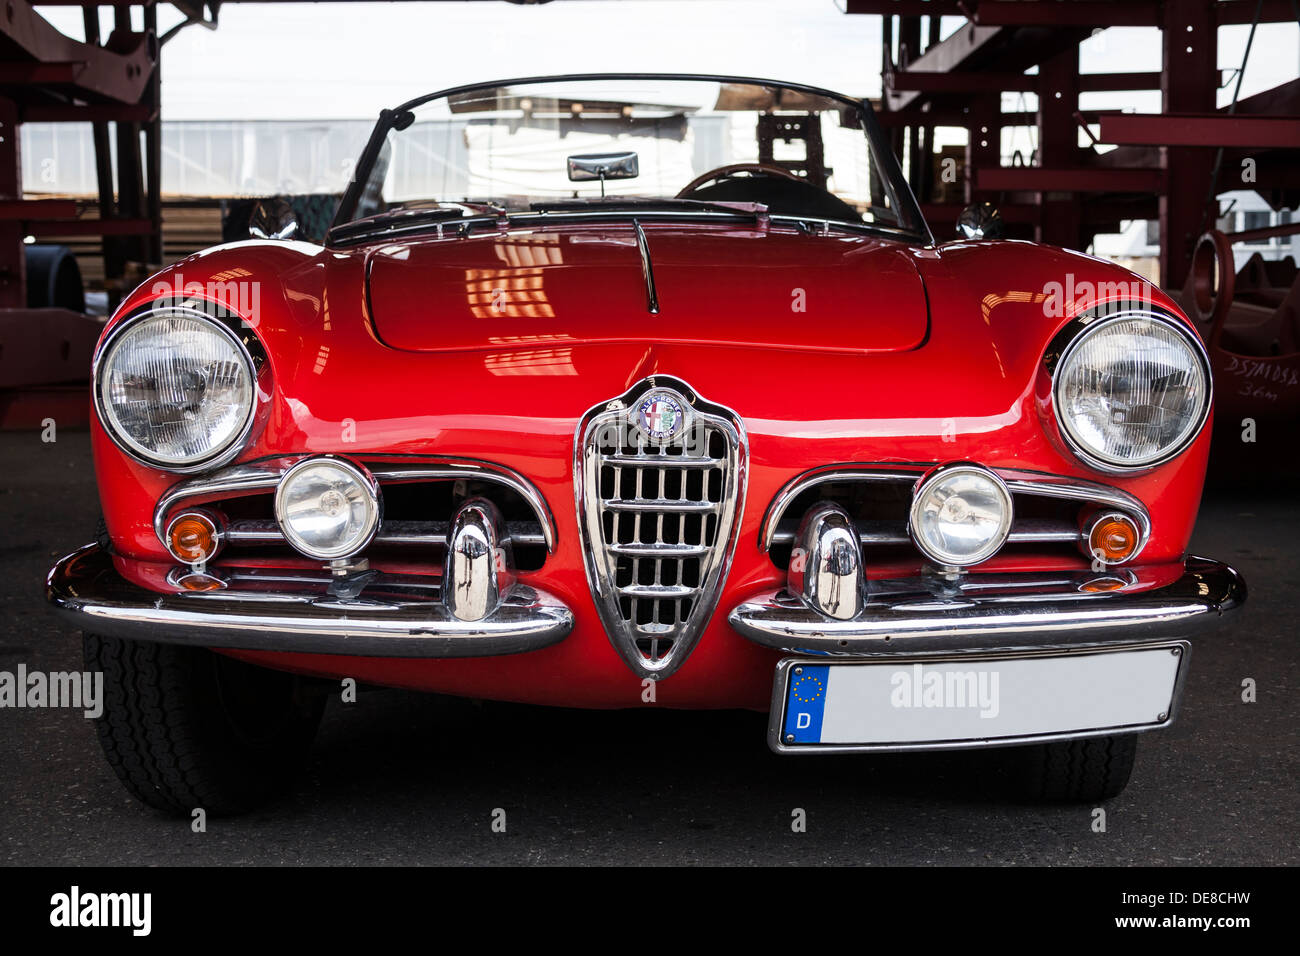 oldtimer alfa romeo spider stockfotos oldtimer alfa romeo spider bilder alamy. Black Bedroom Furniture Sets. Home Design Ideas